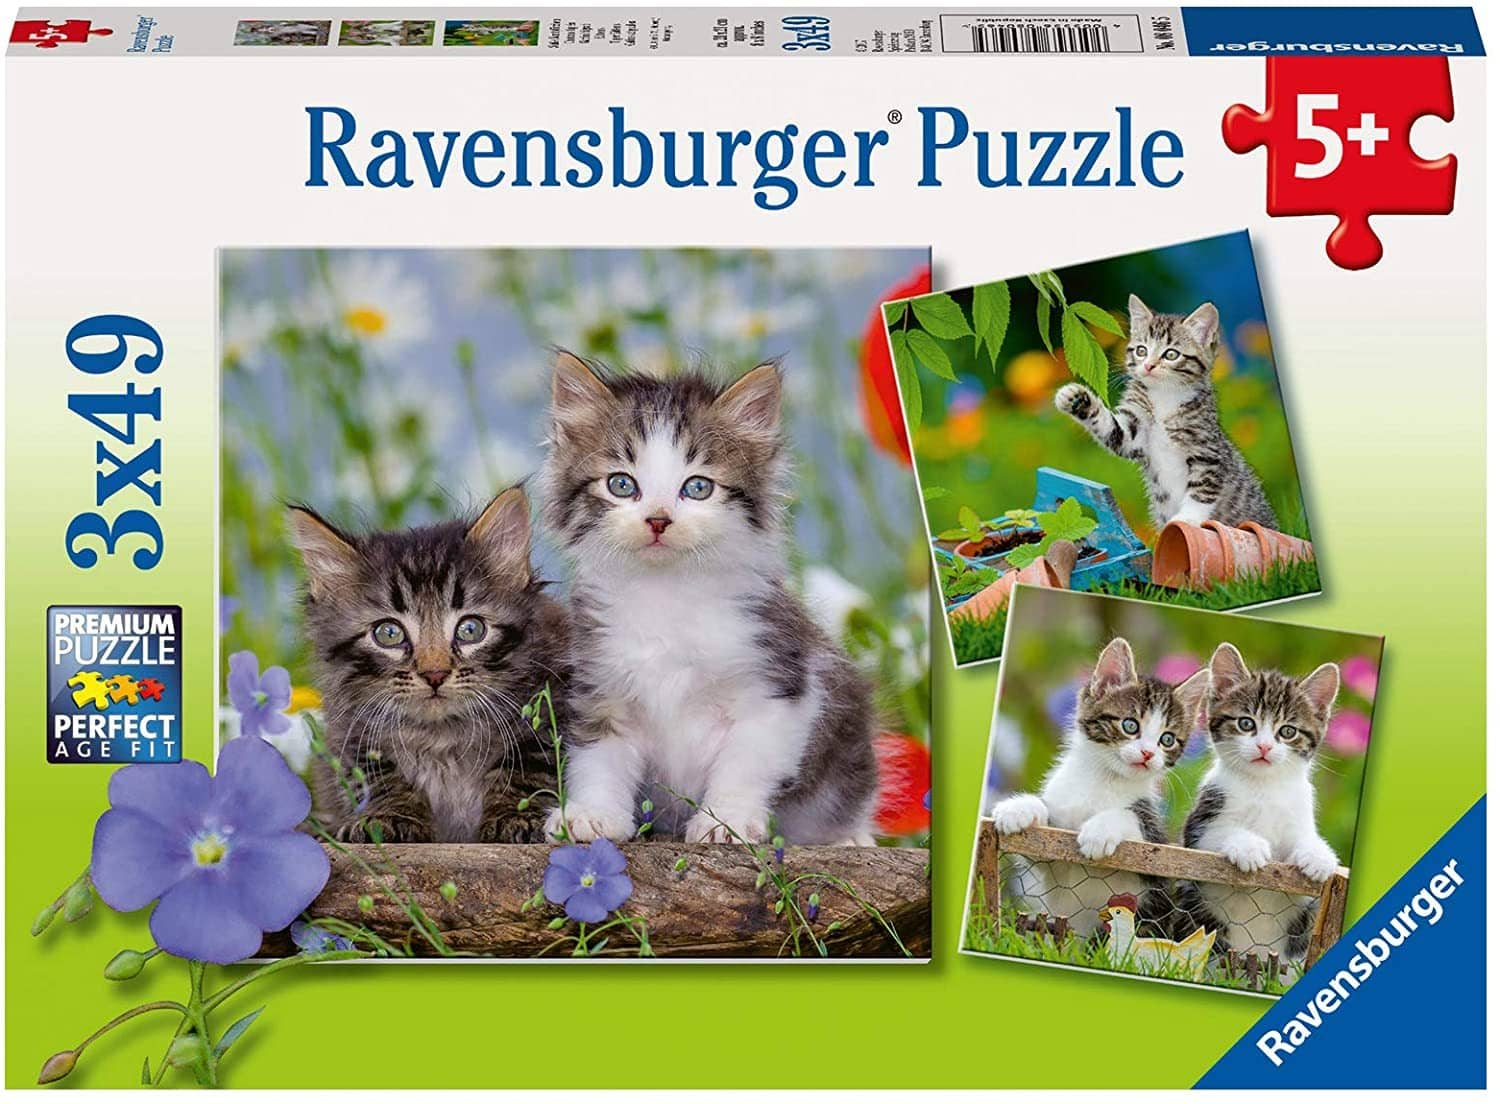 Ravensburger 08046: Cuddly Kittens (Three 49 Piece Jigsaw Puzzles)-Kidding Around NYC